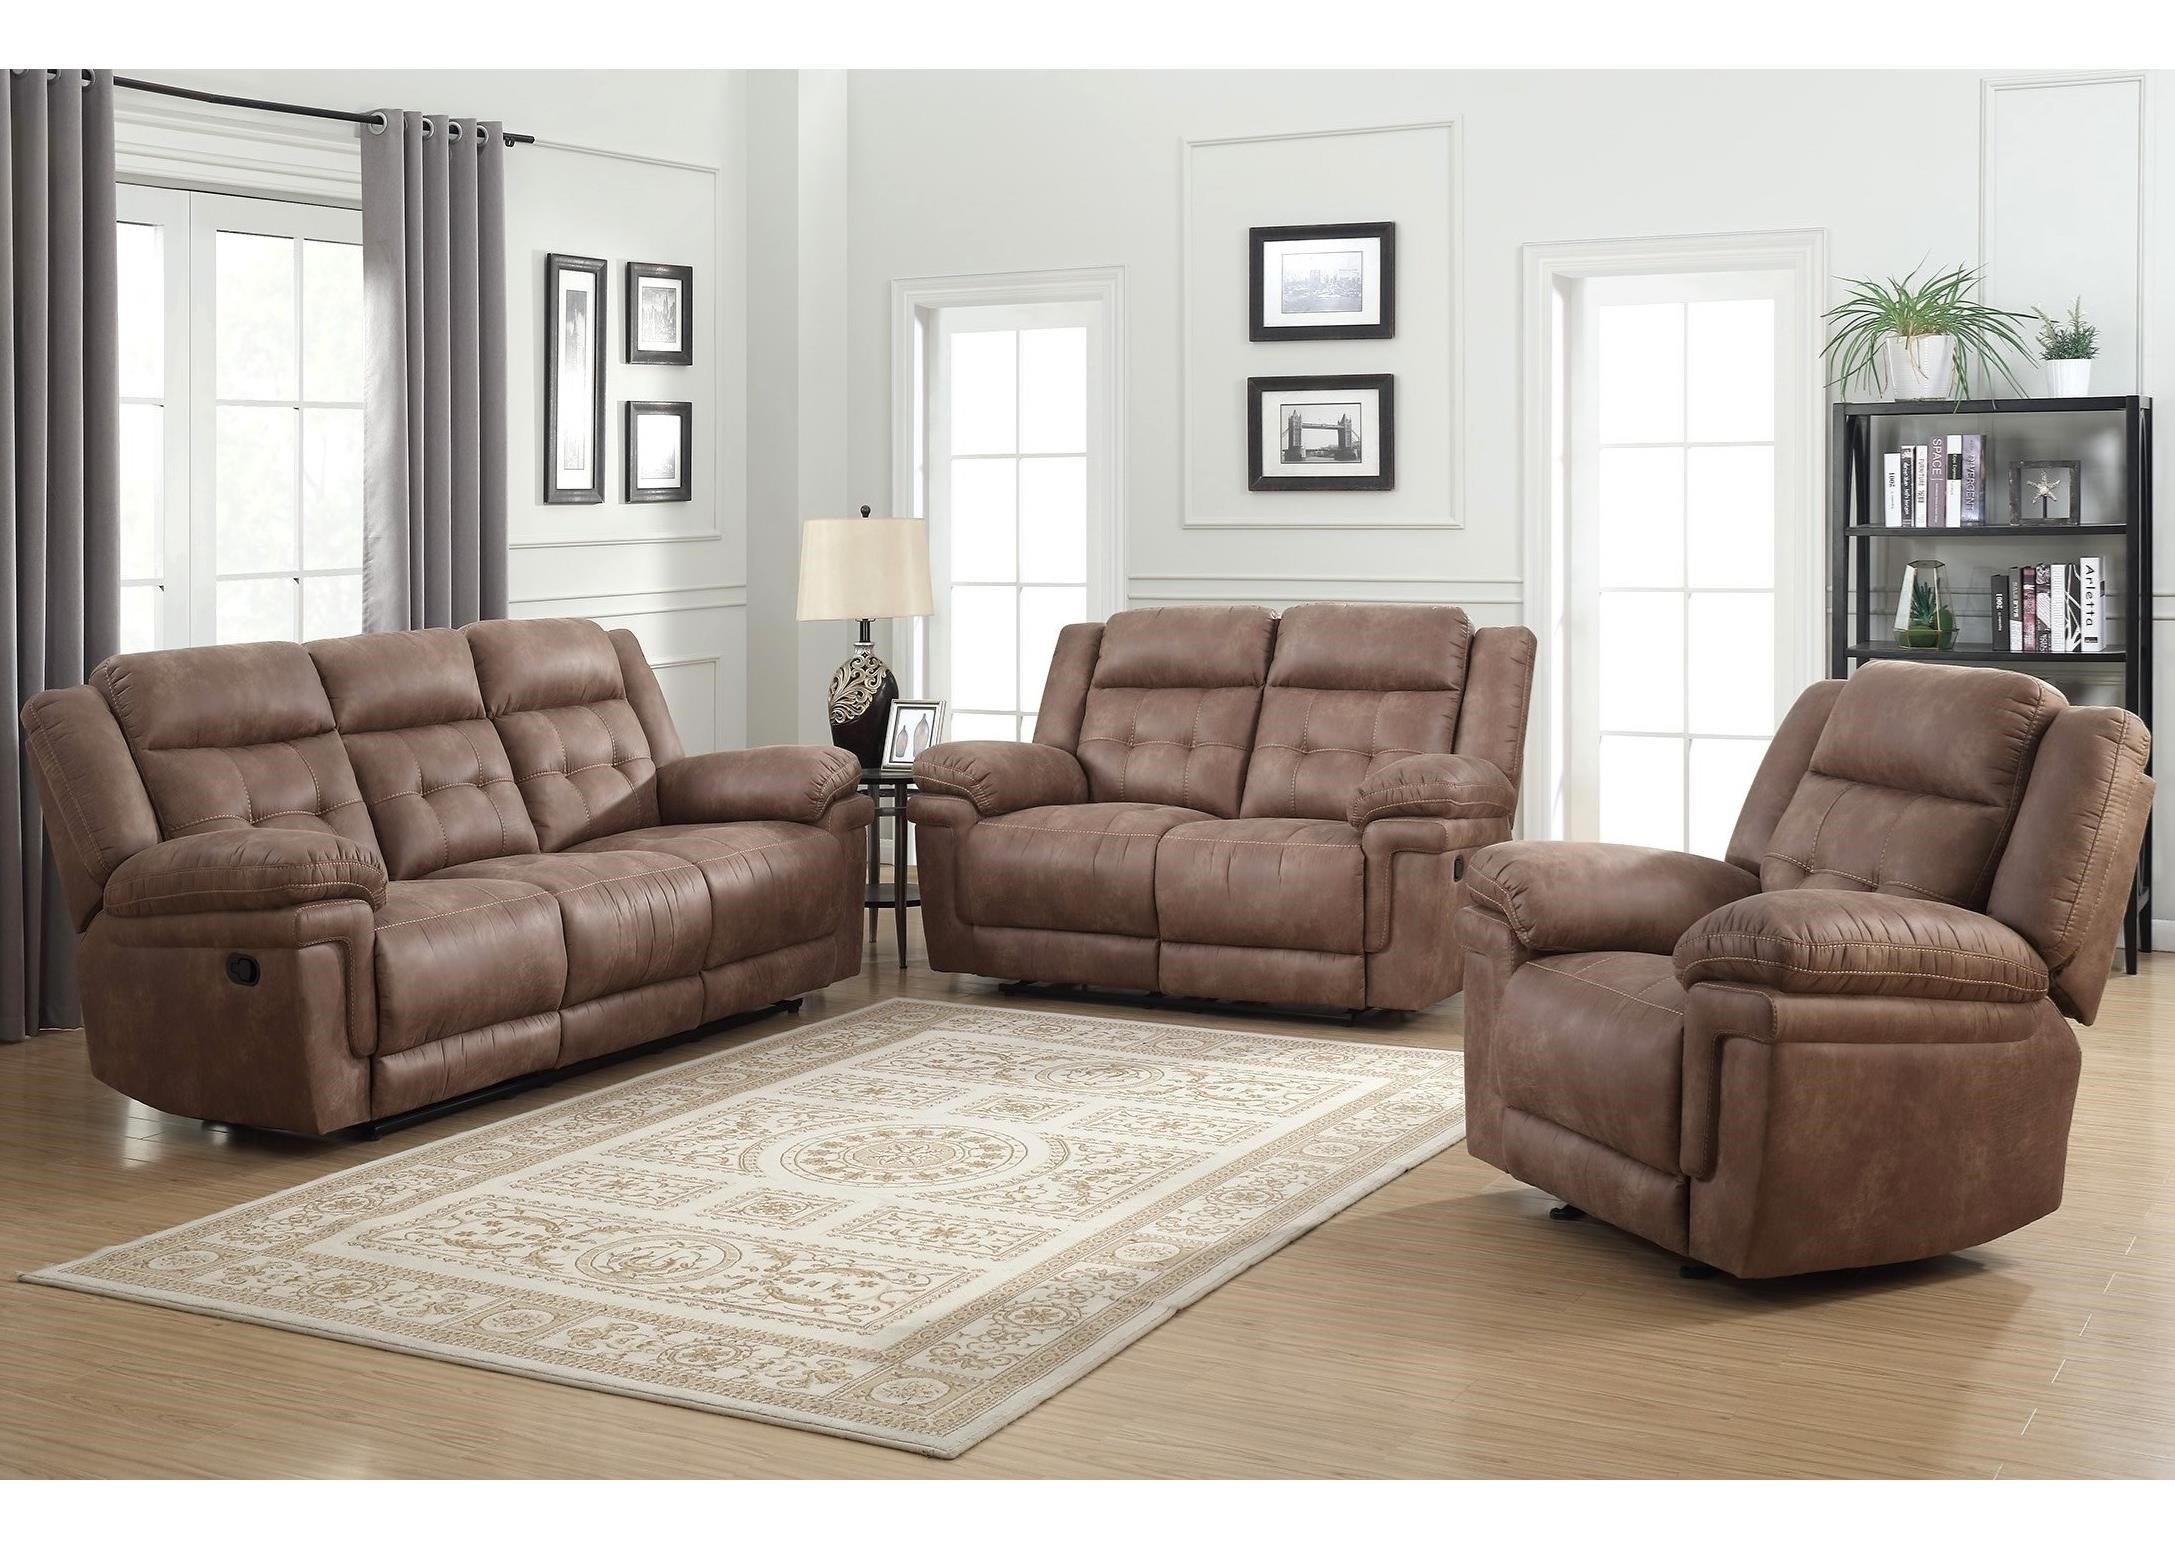 Anastasia Reclining Living Room Group by Star at EFO Furniture Outlet